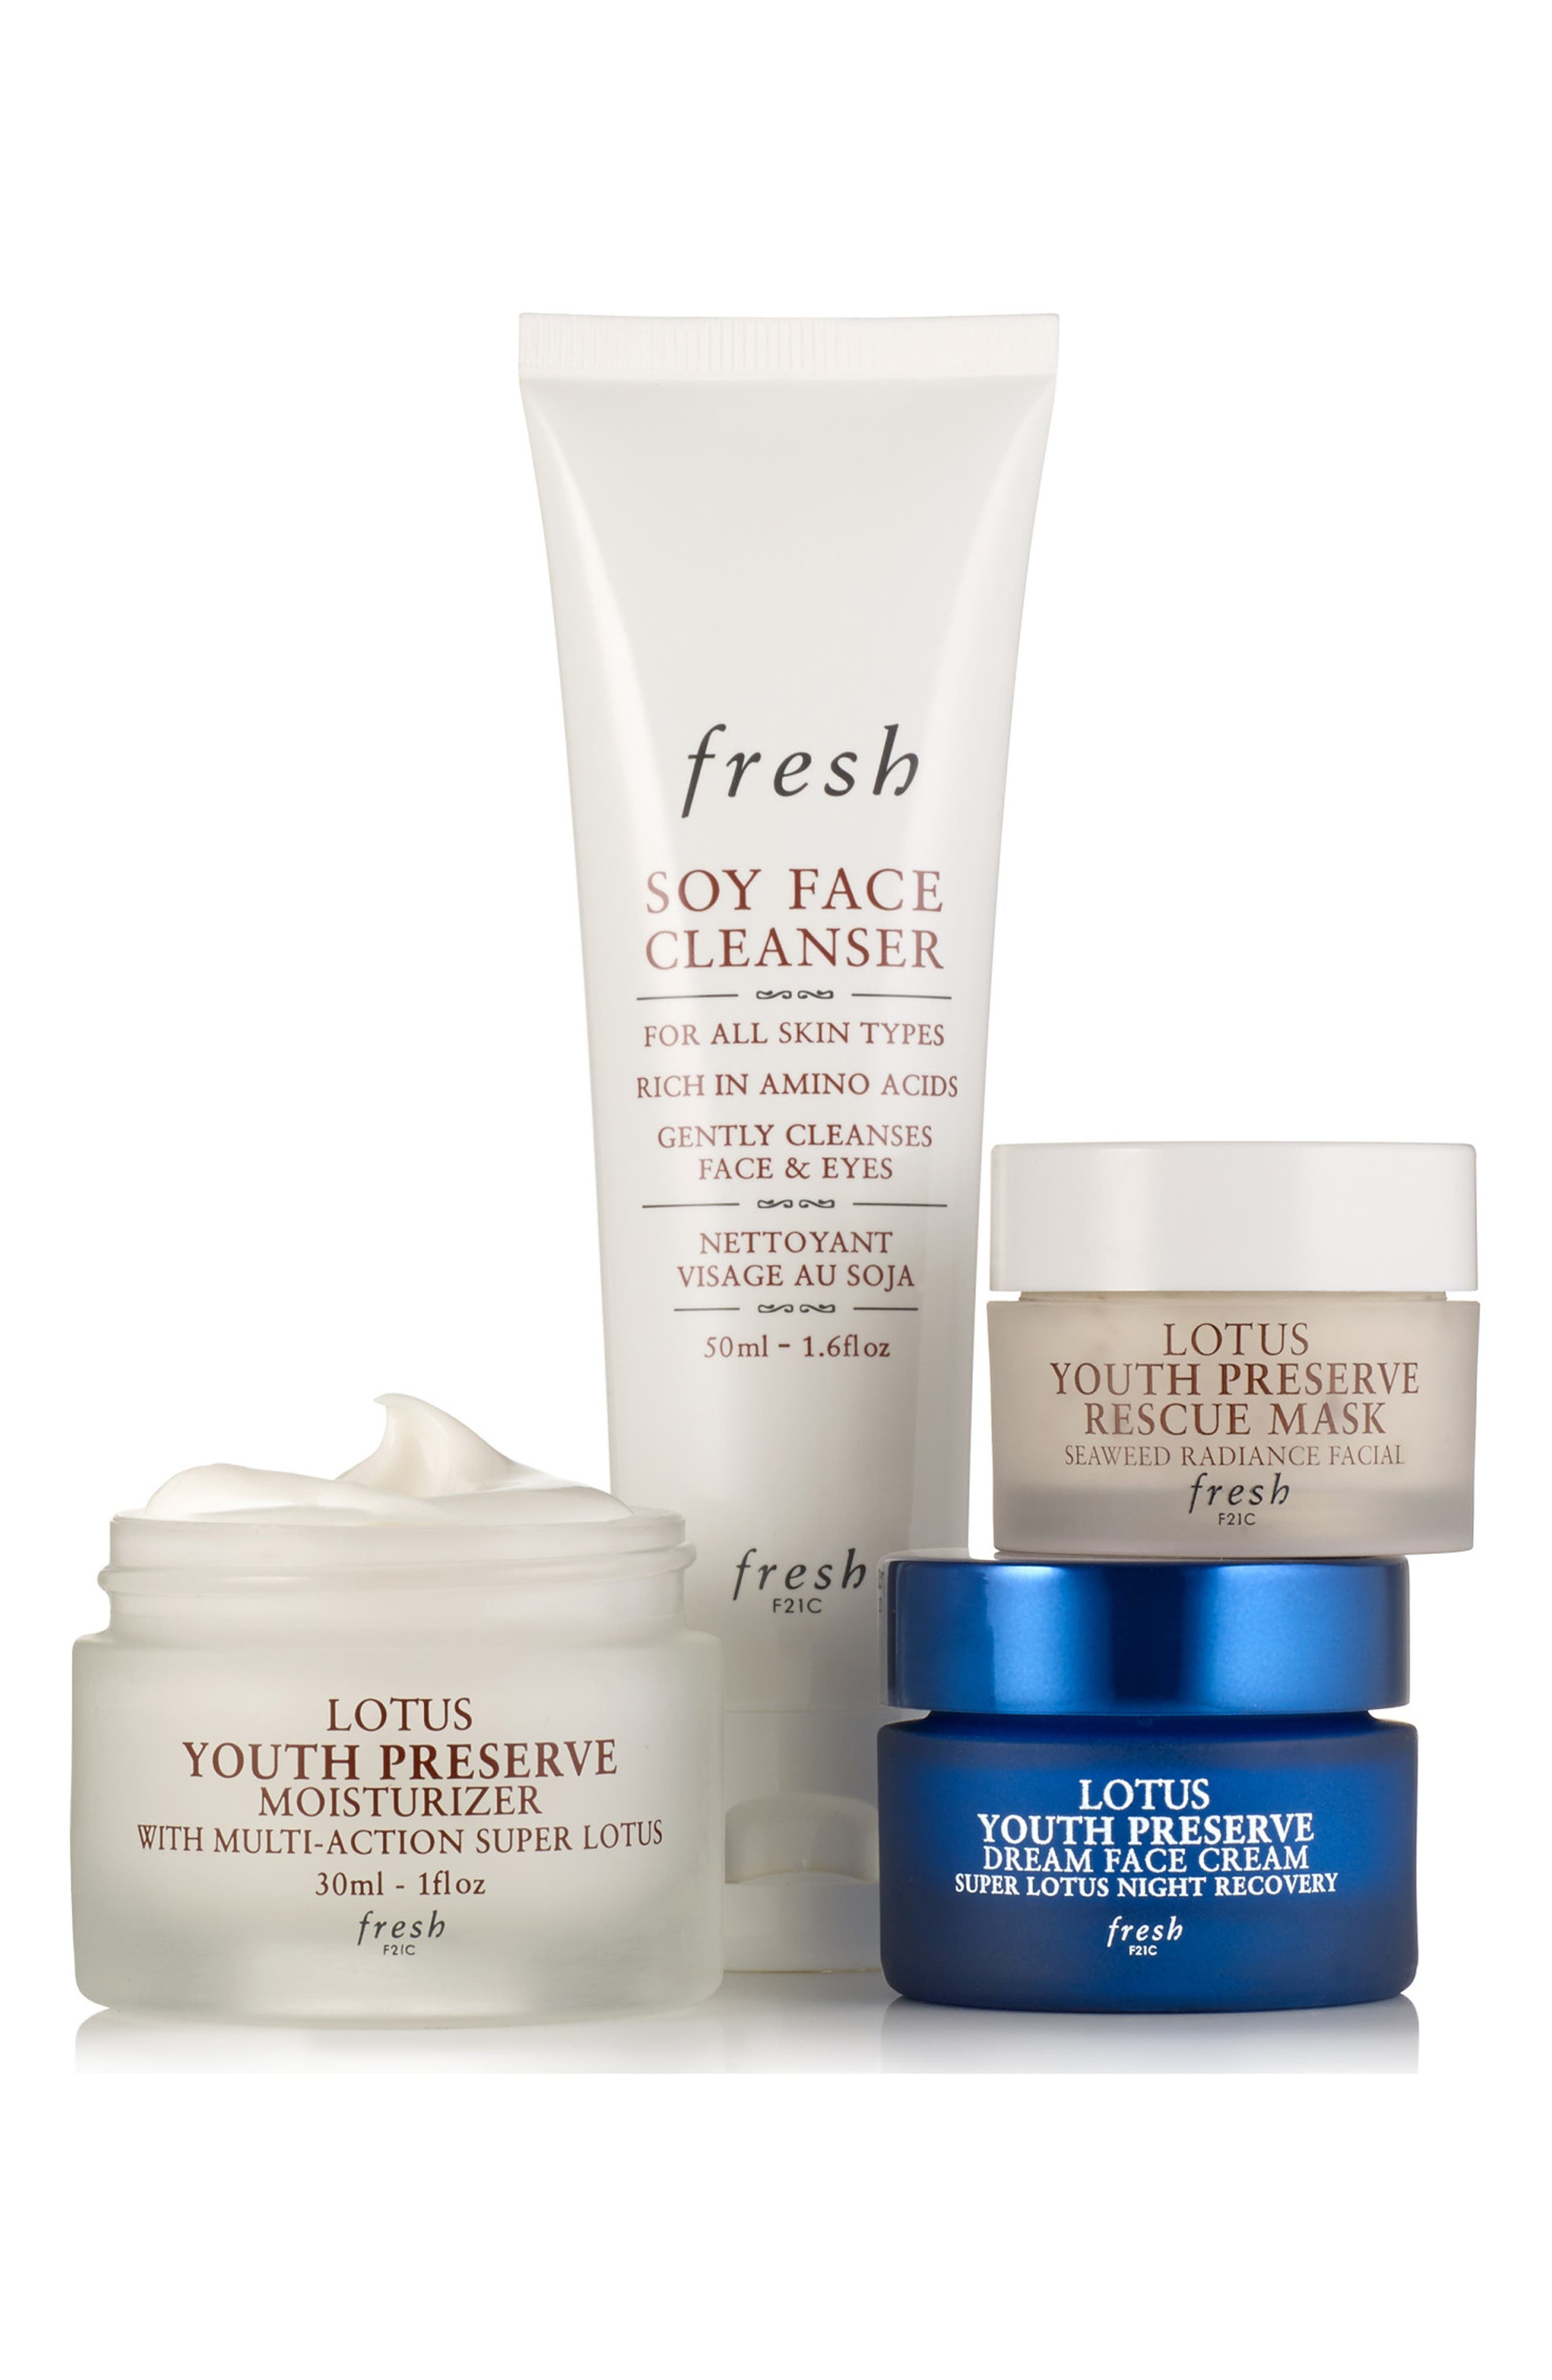 Fresh Day Night Dewy Skin Care Set Nordstrom Exclusive Usd 74 Value Nordstrom